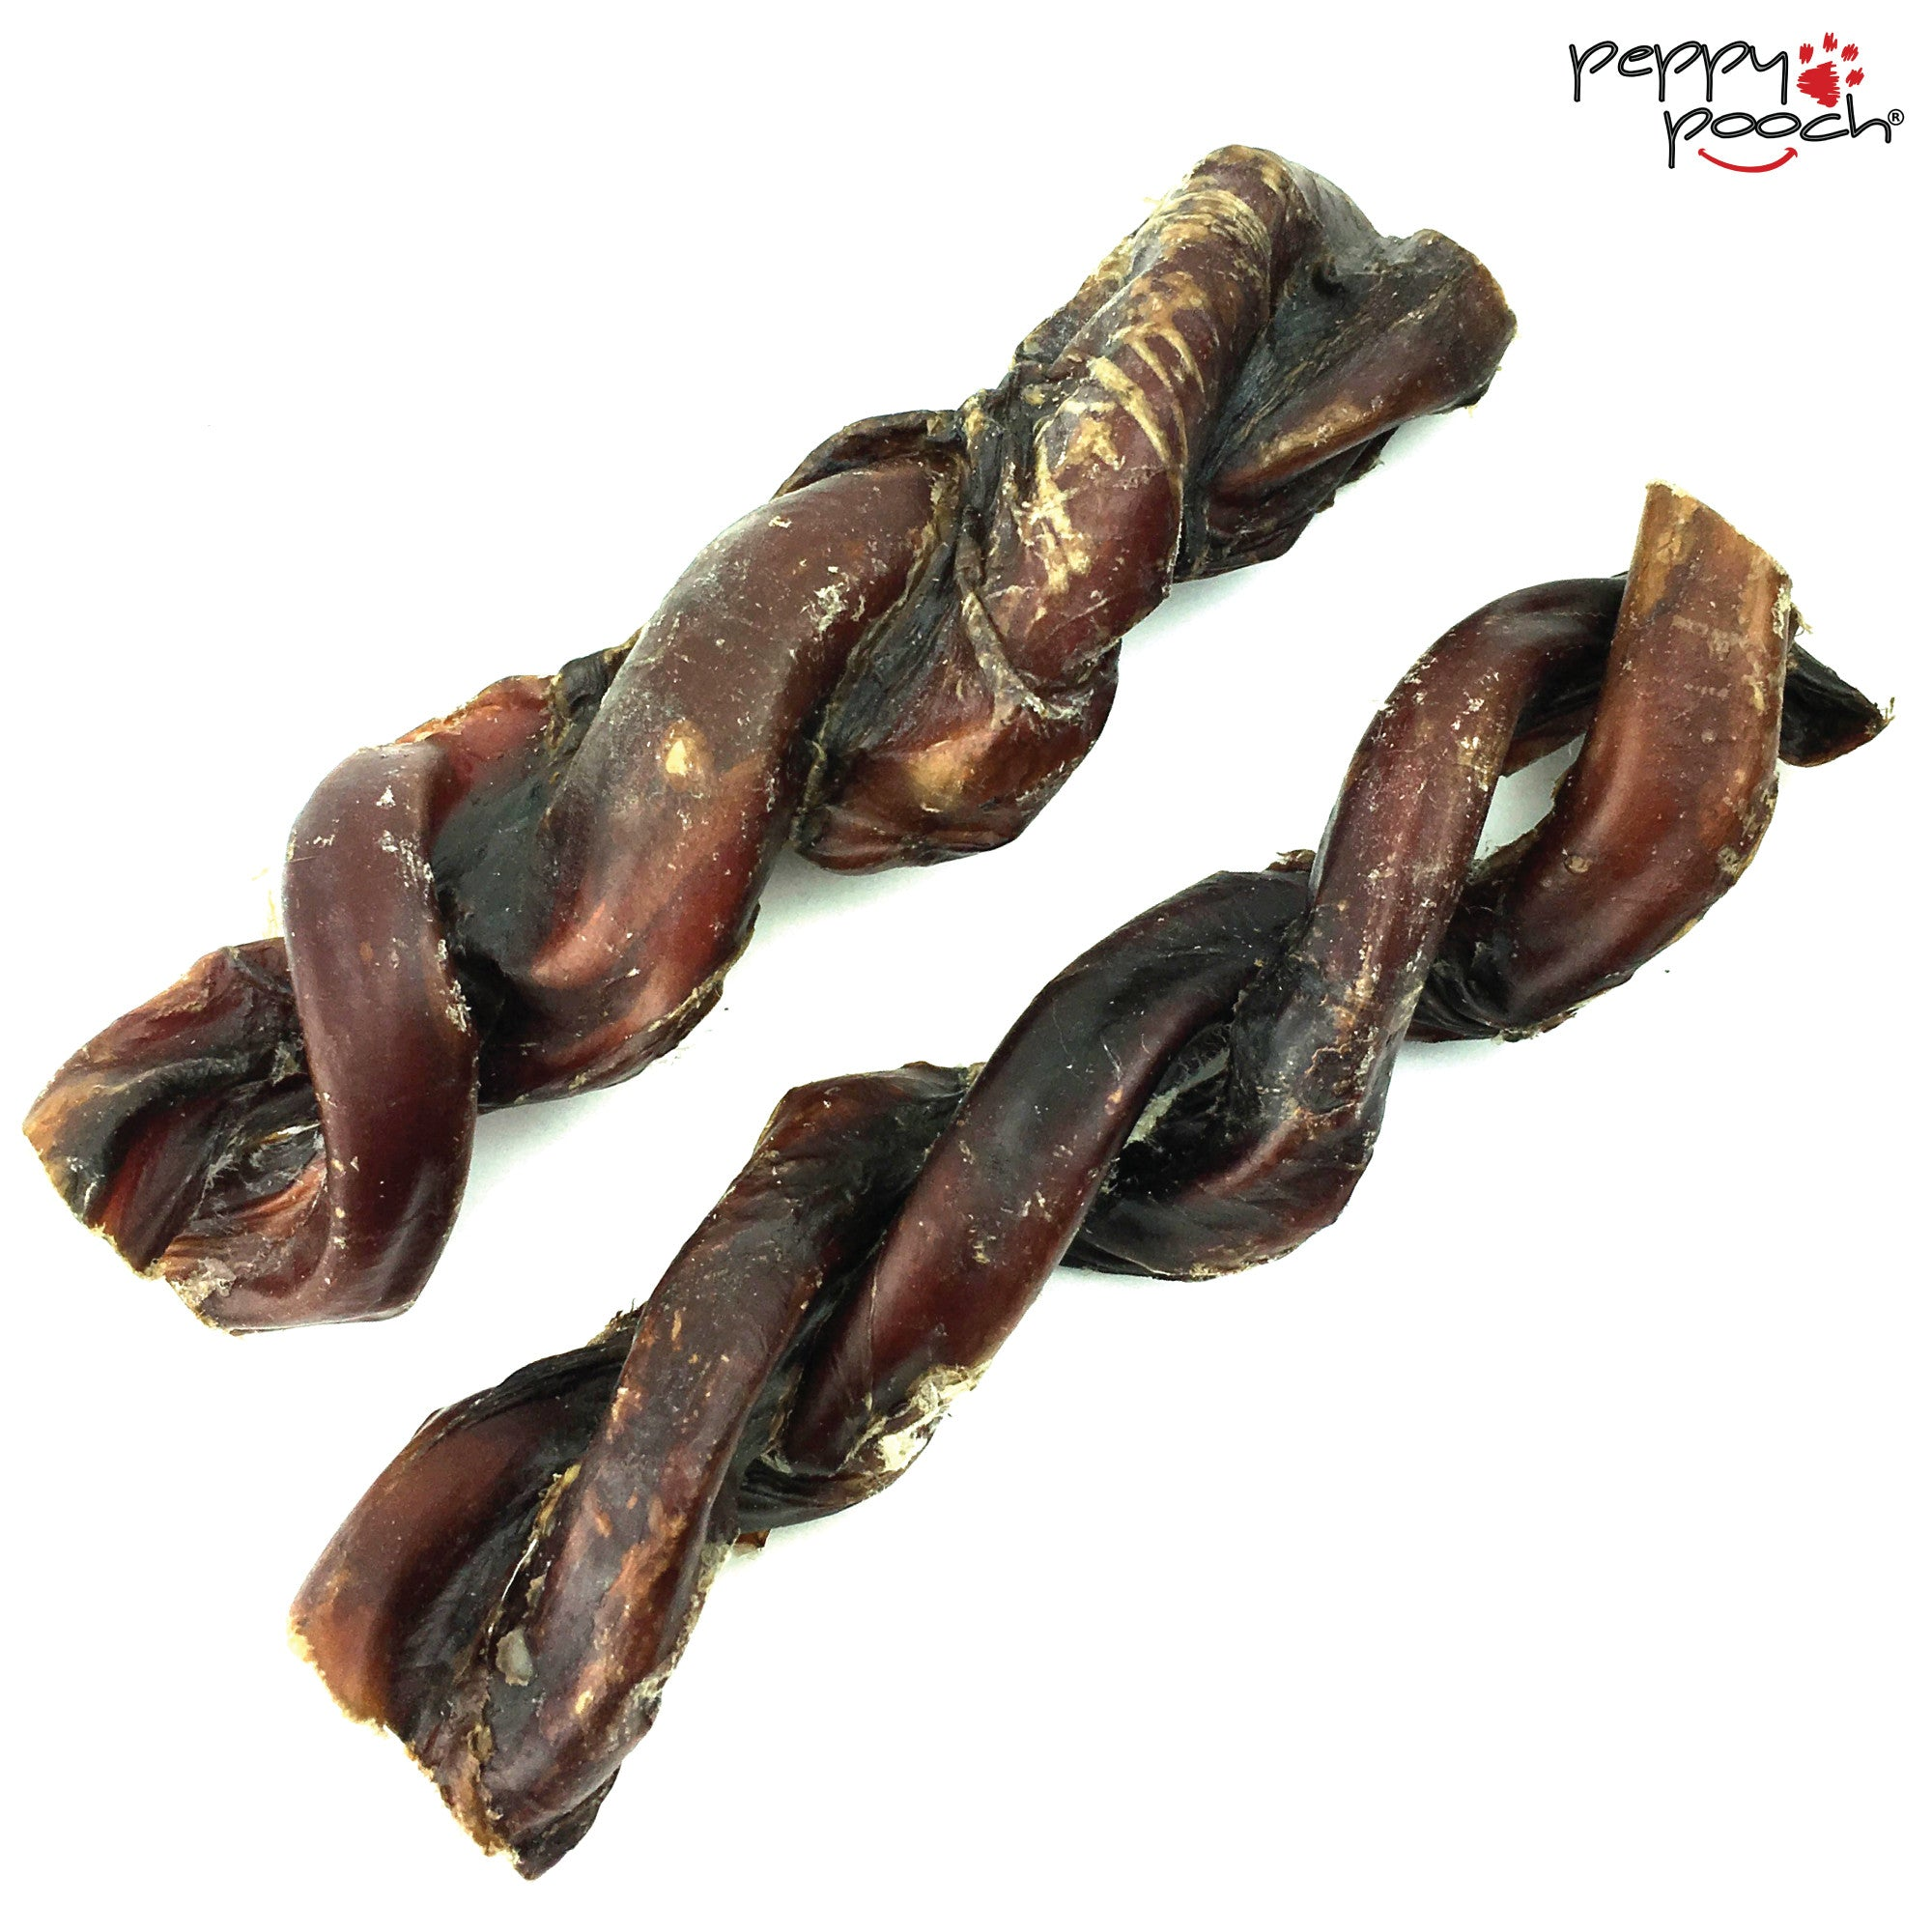 braided bully stick dog chews all natural made in usa phunkee monkee. Black Bedroom Furniture Sets. Home Design Ideas